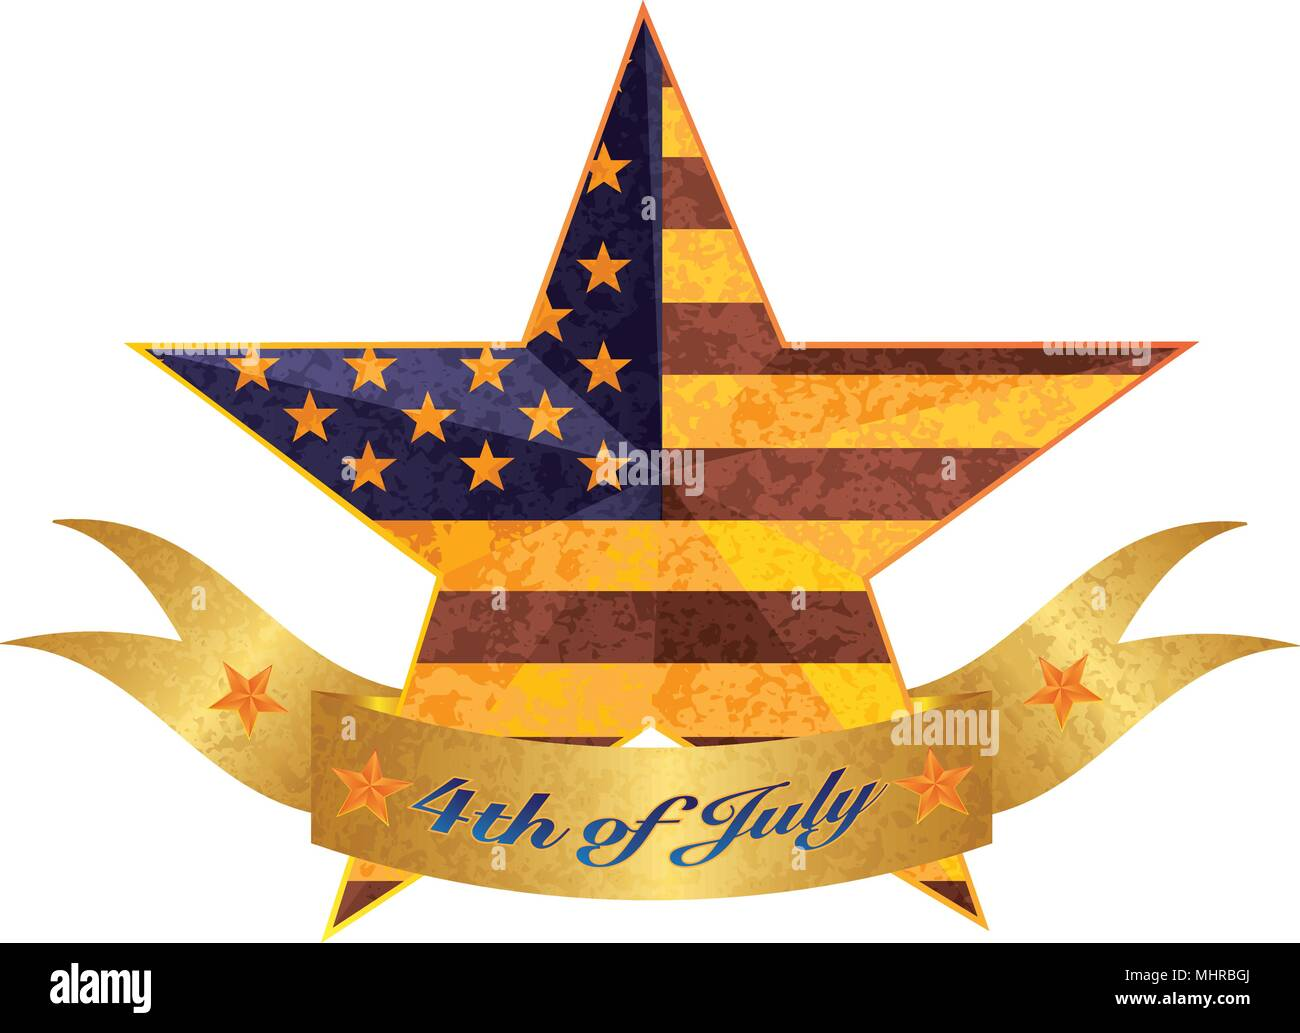 4th of July Banner Independence Day 3D Star Shape with USA American Flag Grunge Texture Illustration - Stock Vector